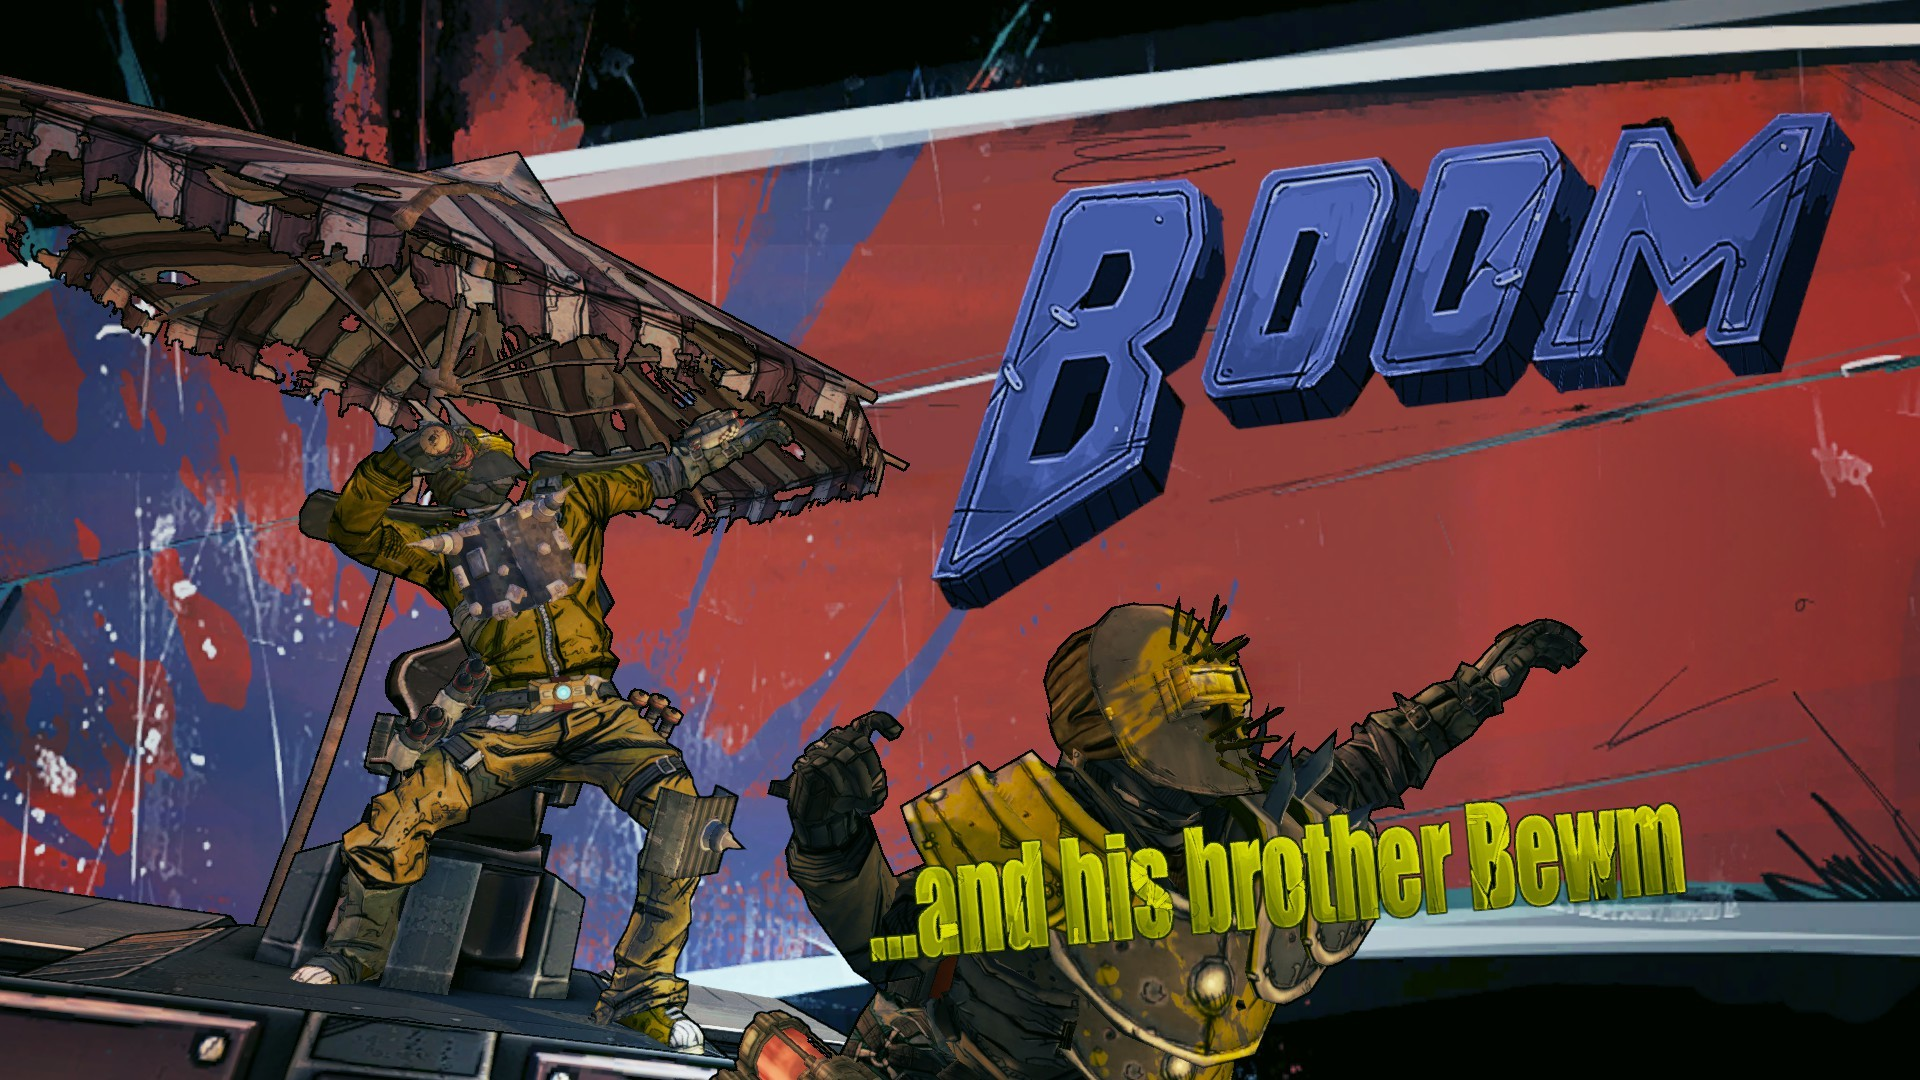 Borderlands 2 Wallpapers, Pictures, Images